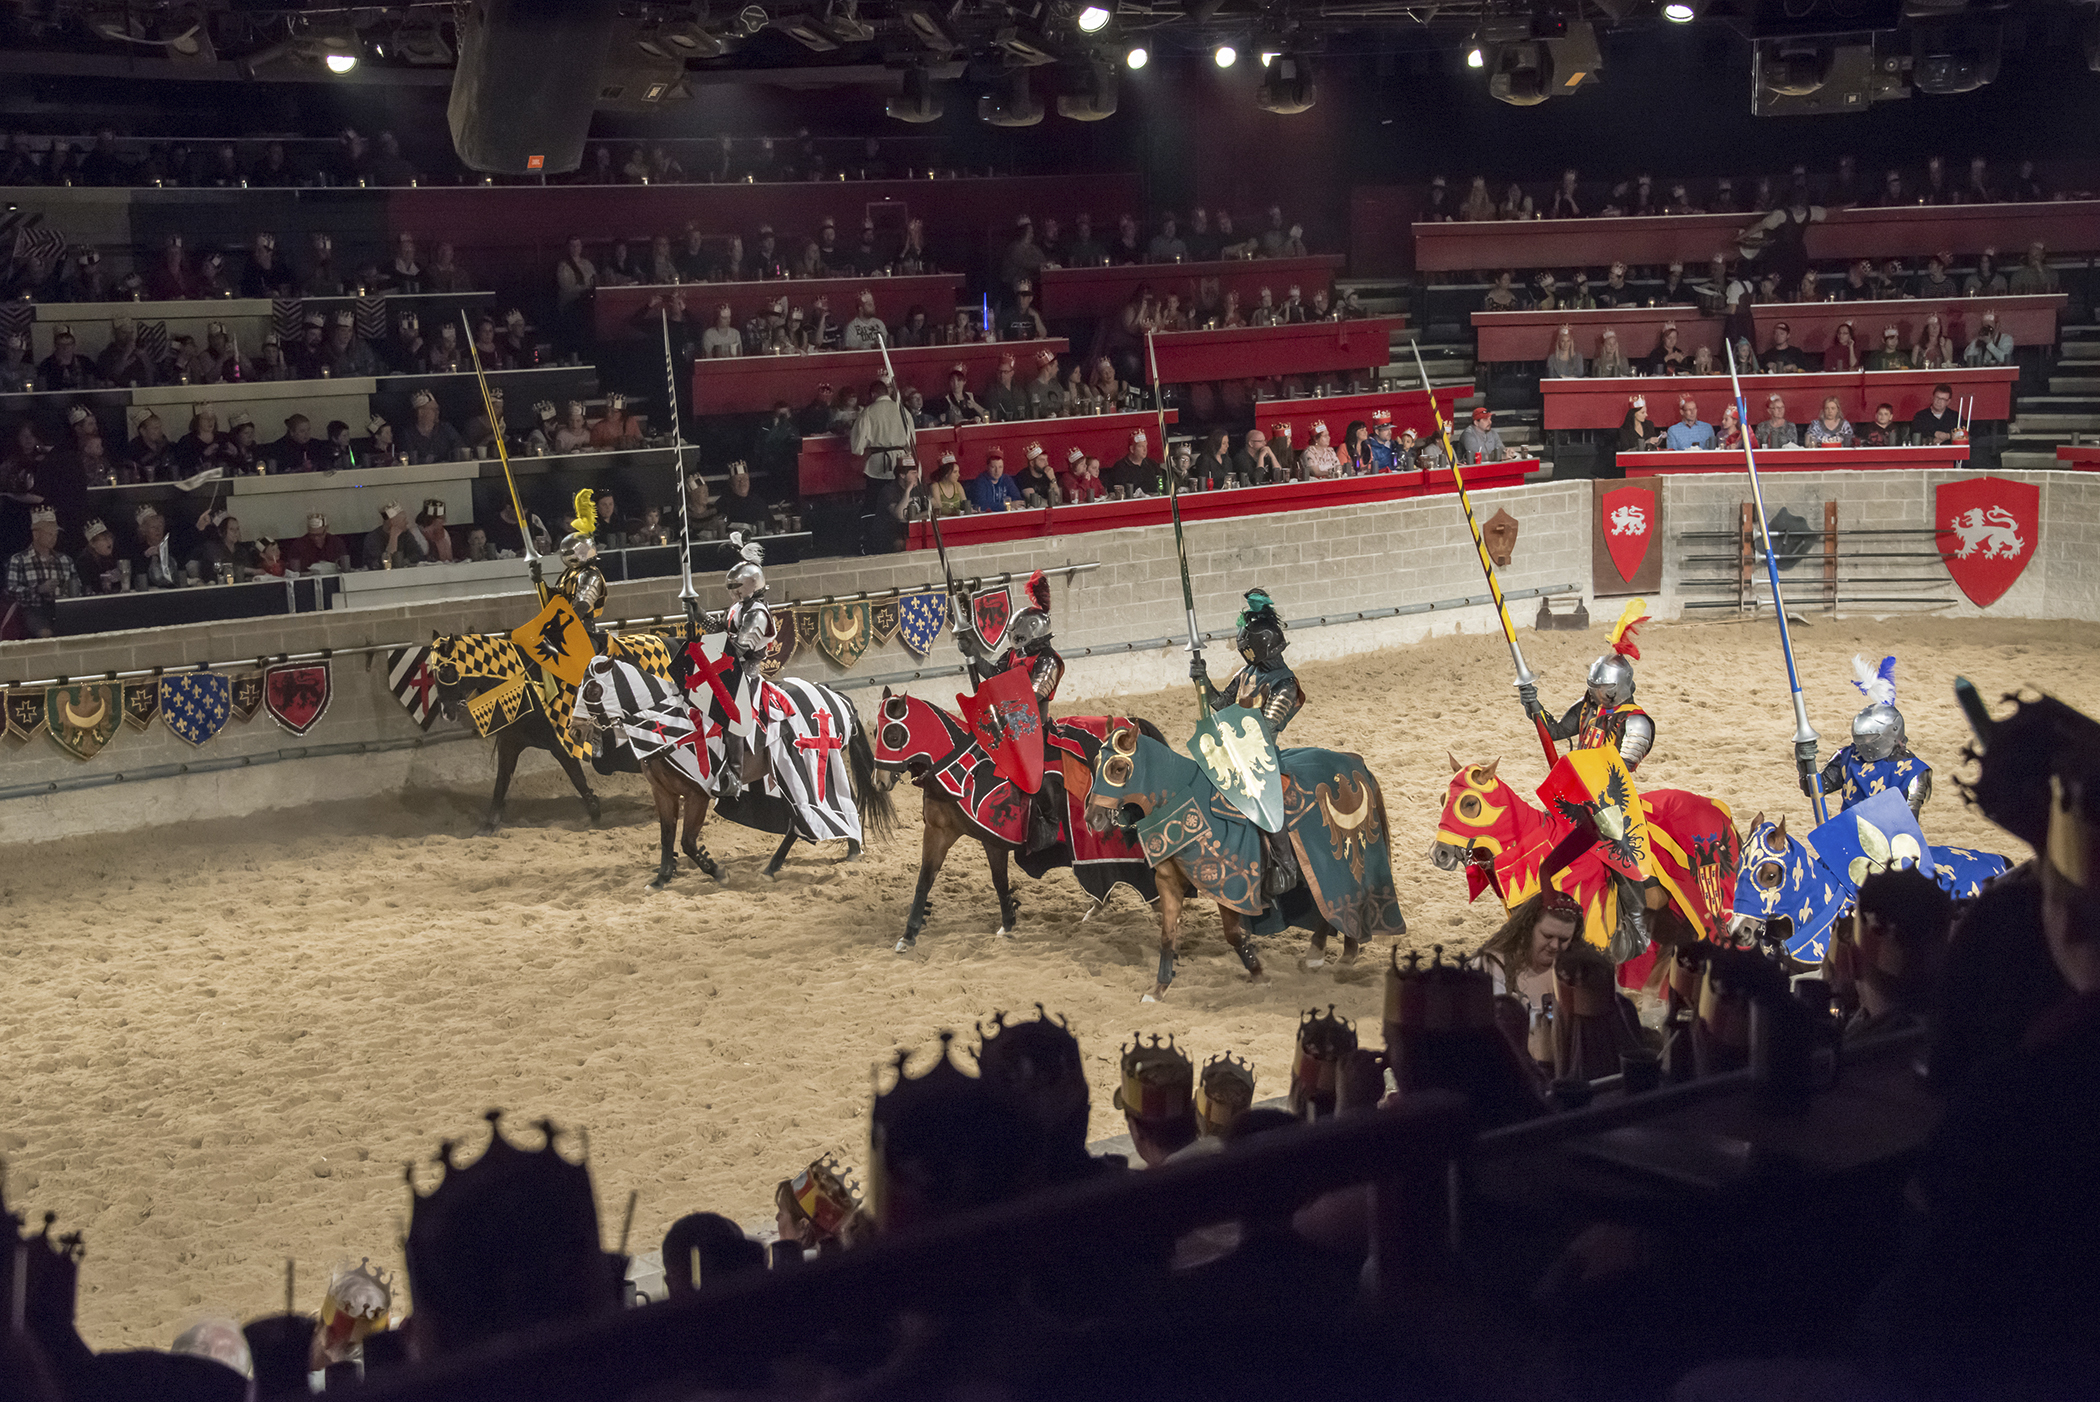 Medieval Times Restaurant: Six horsemen at a jousting event, dressed as medieval knights holding lances, lined up in a stadium full of spectators, waiting to begin the show, Toronto, Ontario, March 21, 2015.